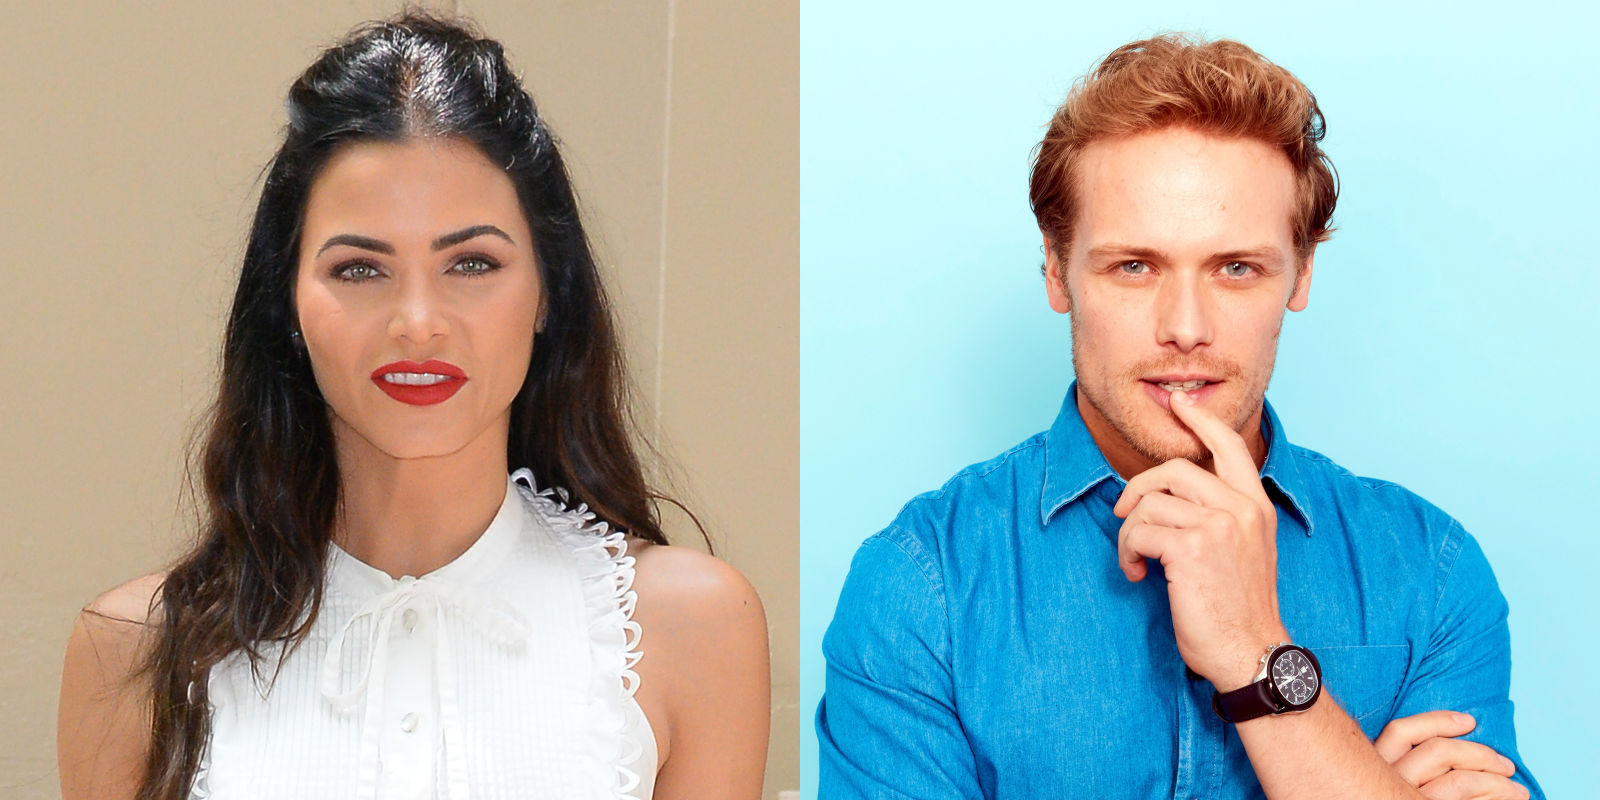 Jenna Dewan Tatum and Sam Heughan Just Danced Together at Comic-Con